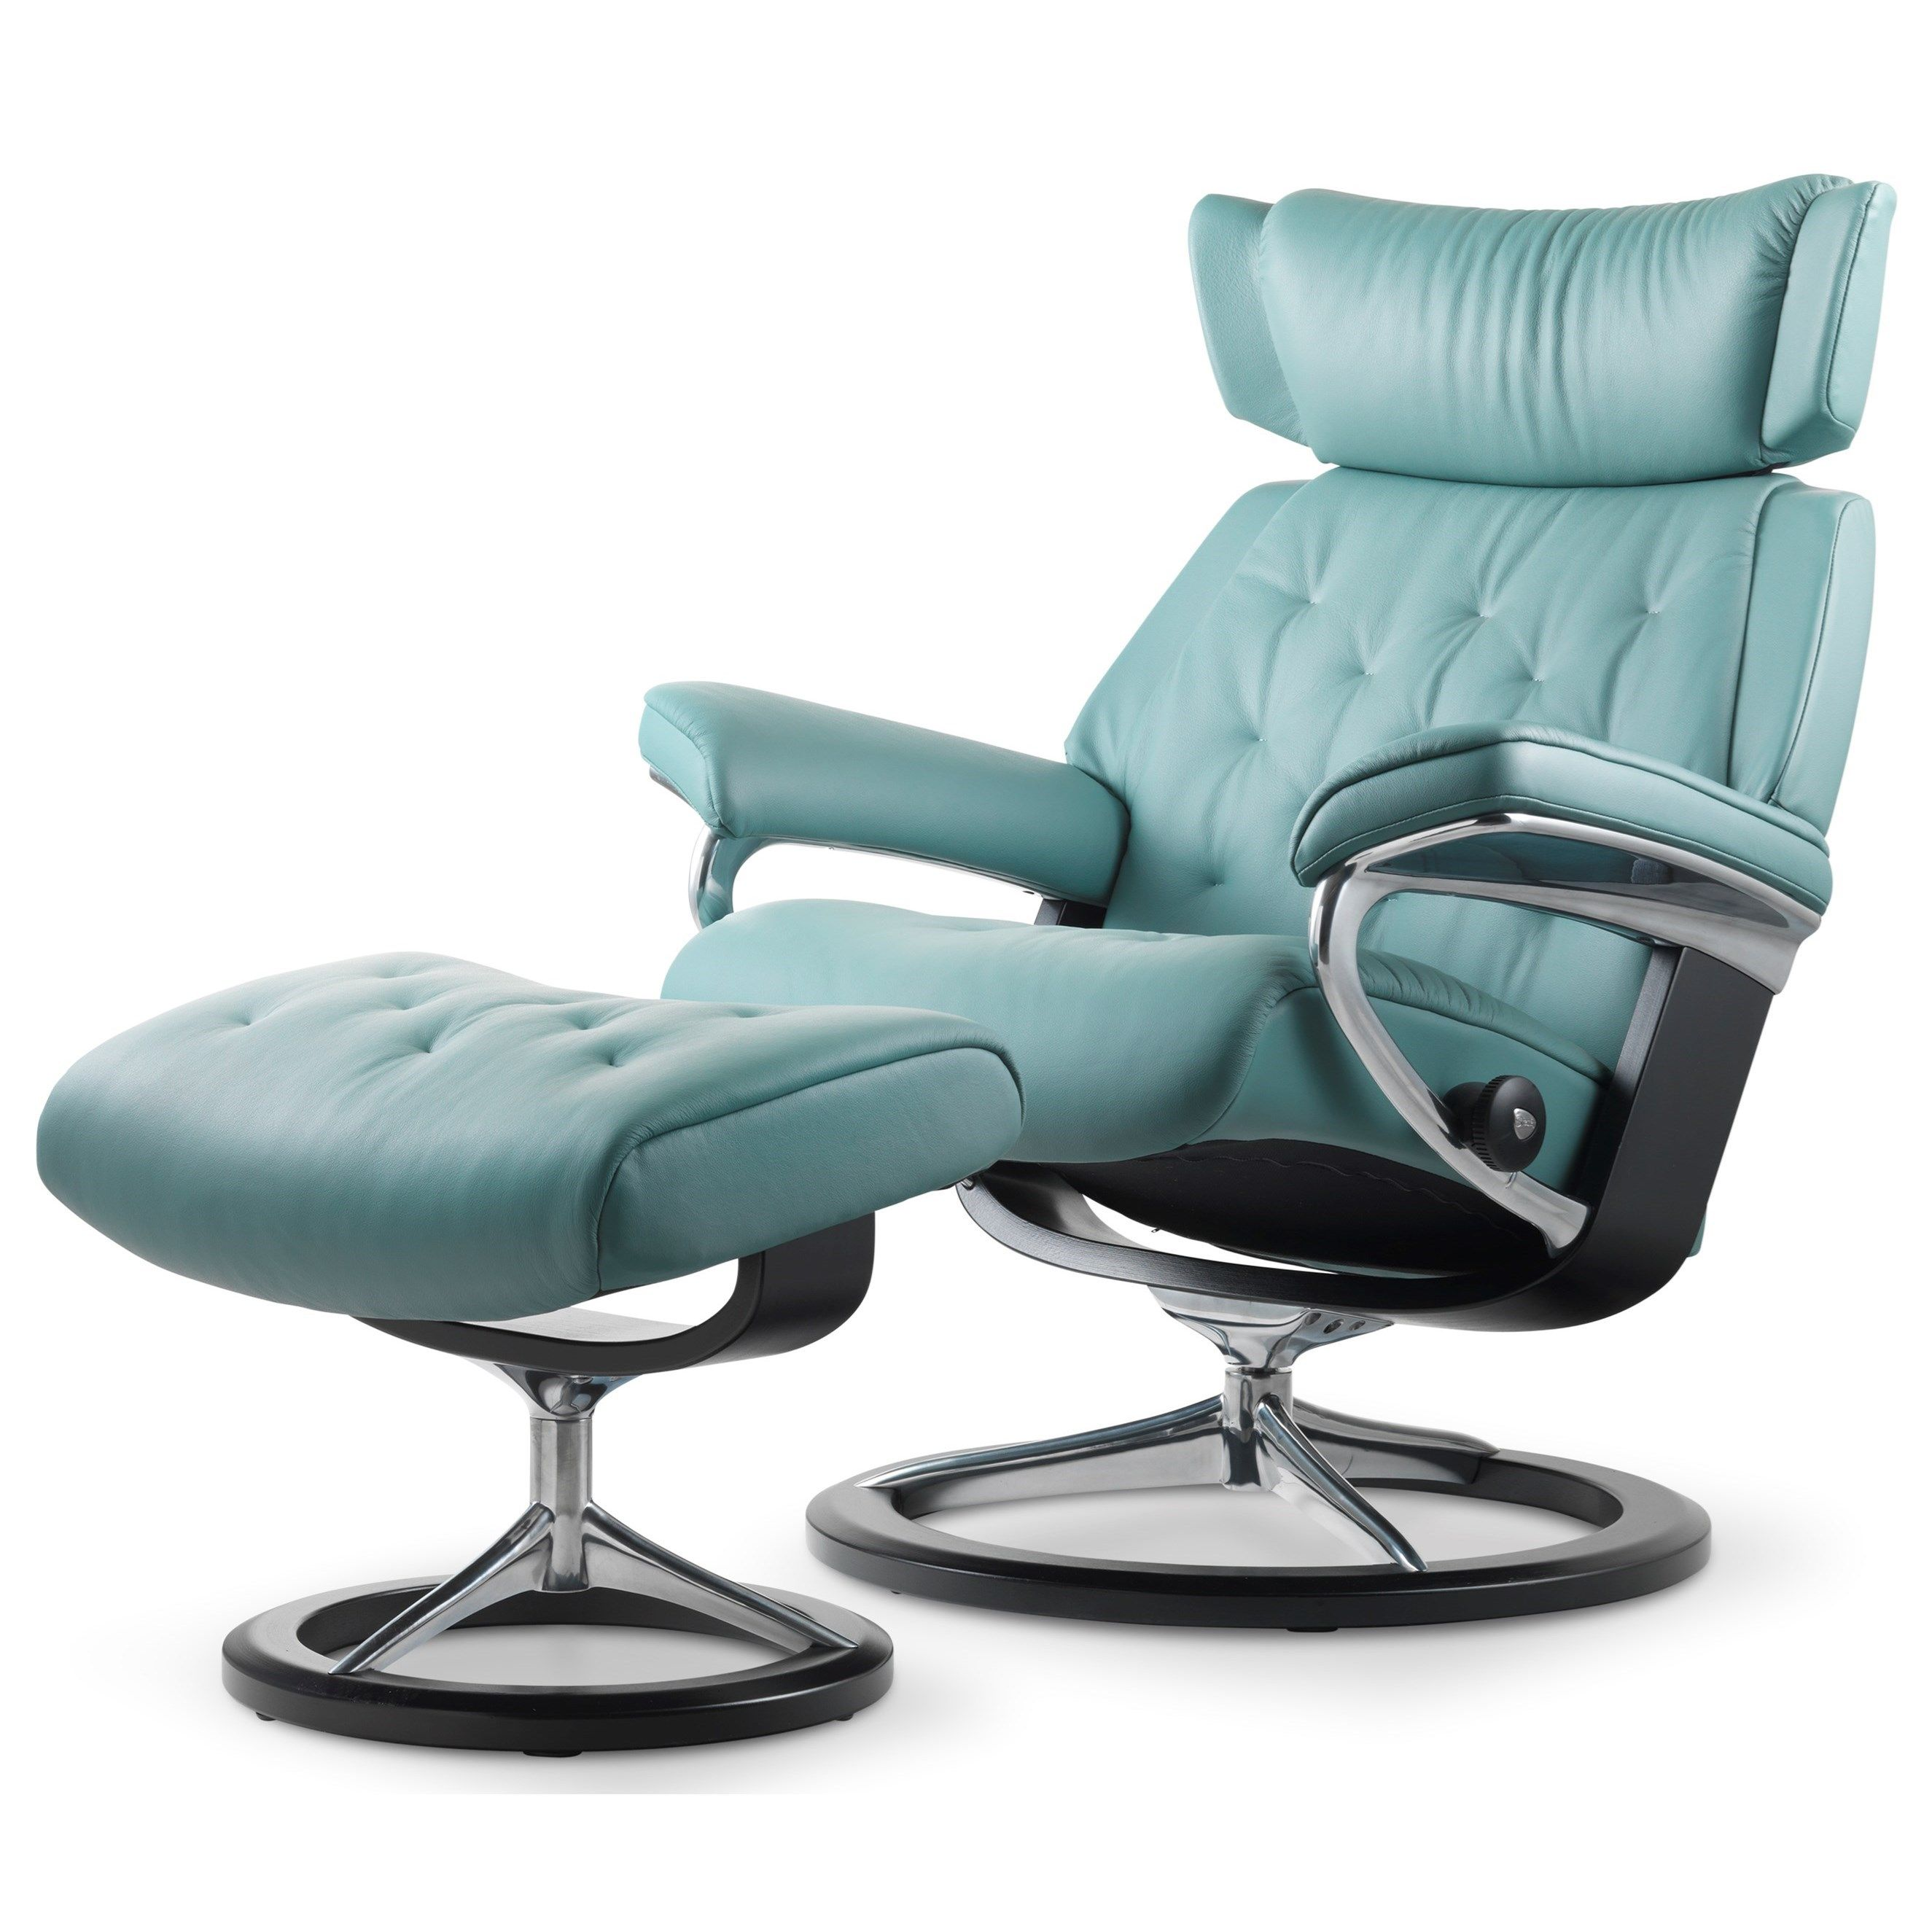 stressless skyline small signature chair by stressless by ekornes